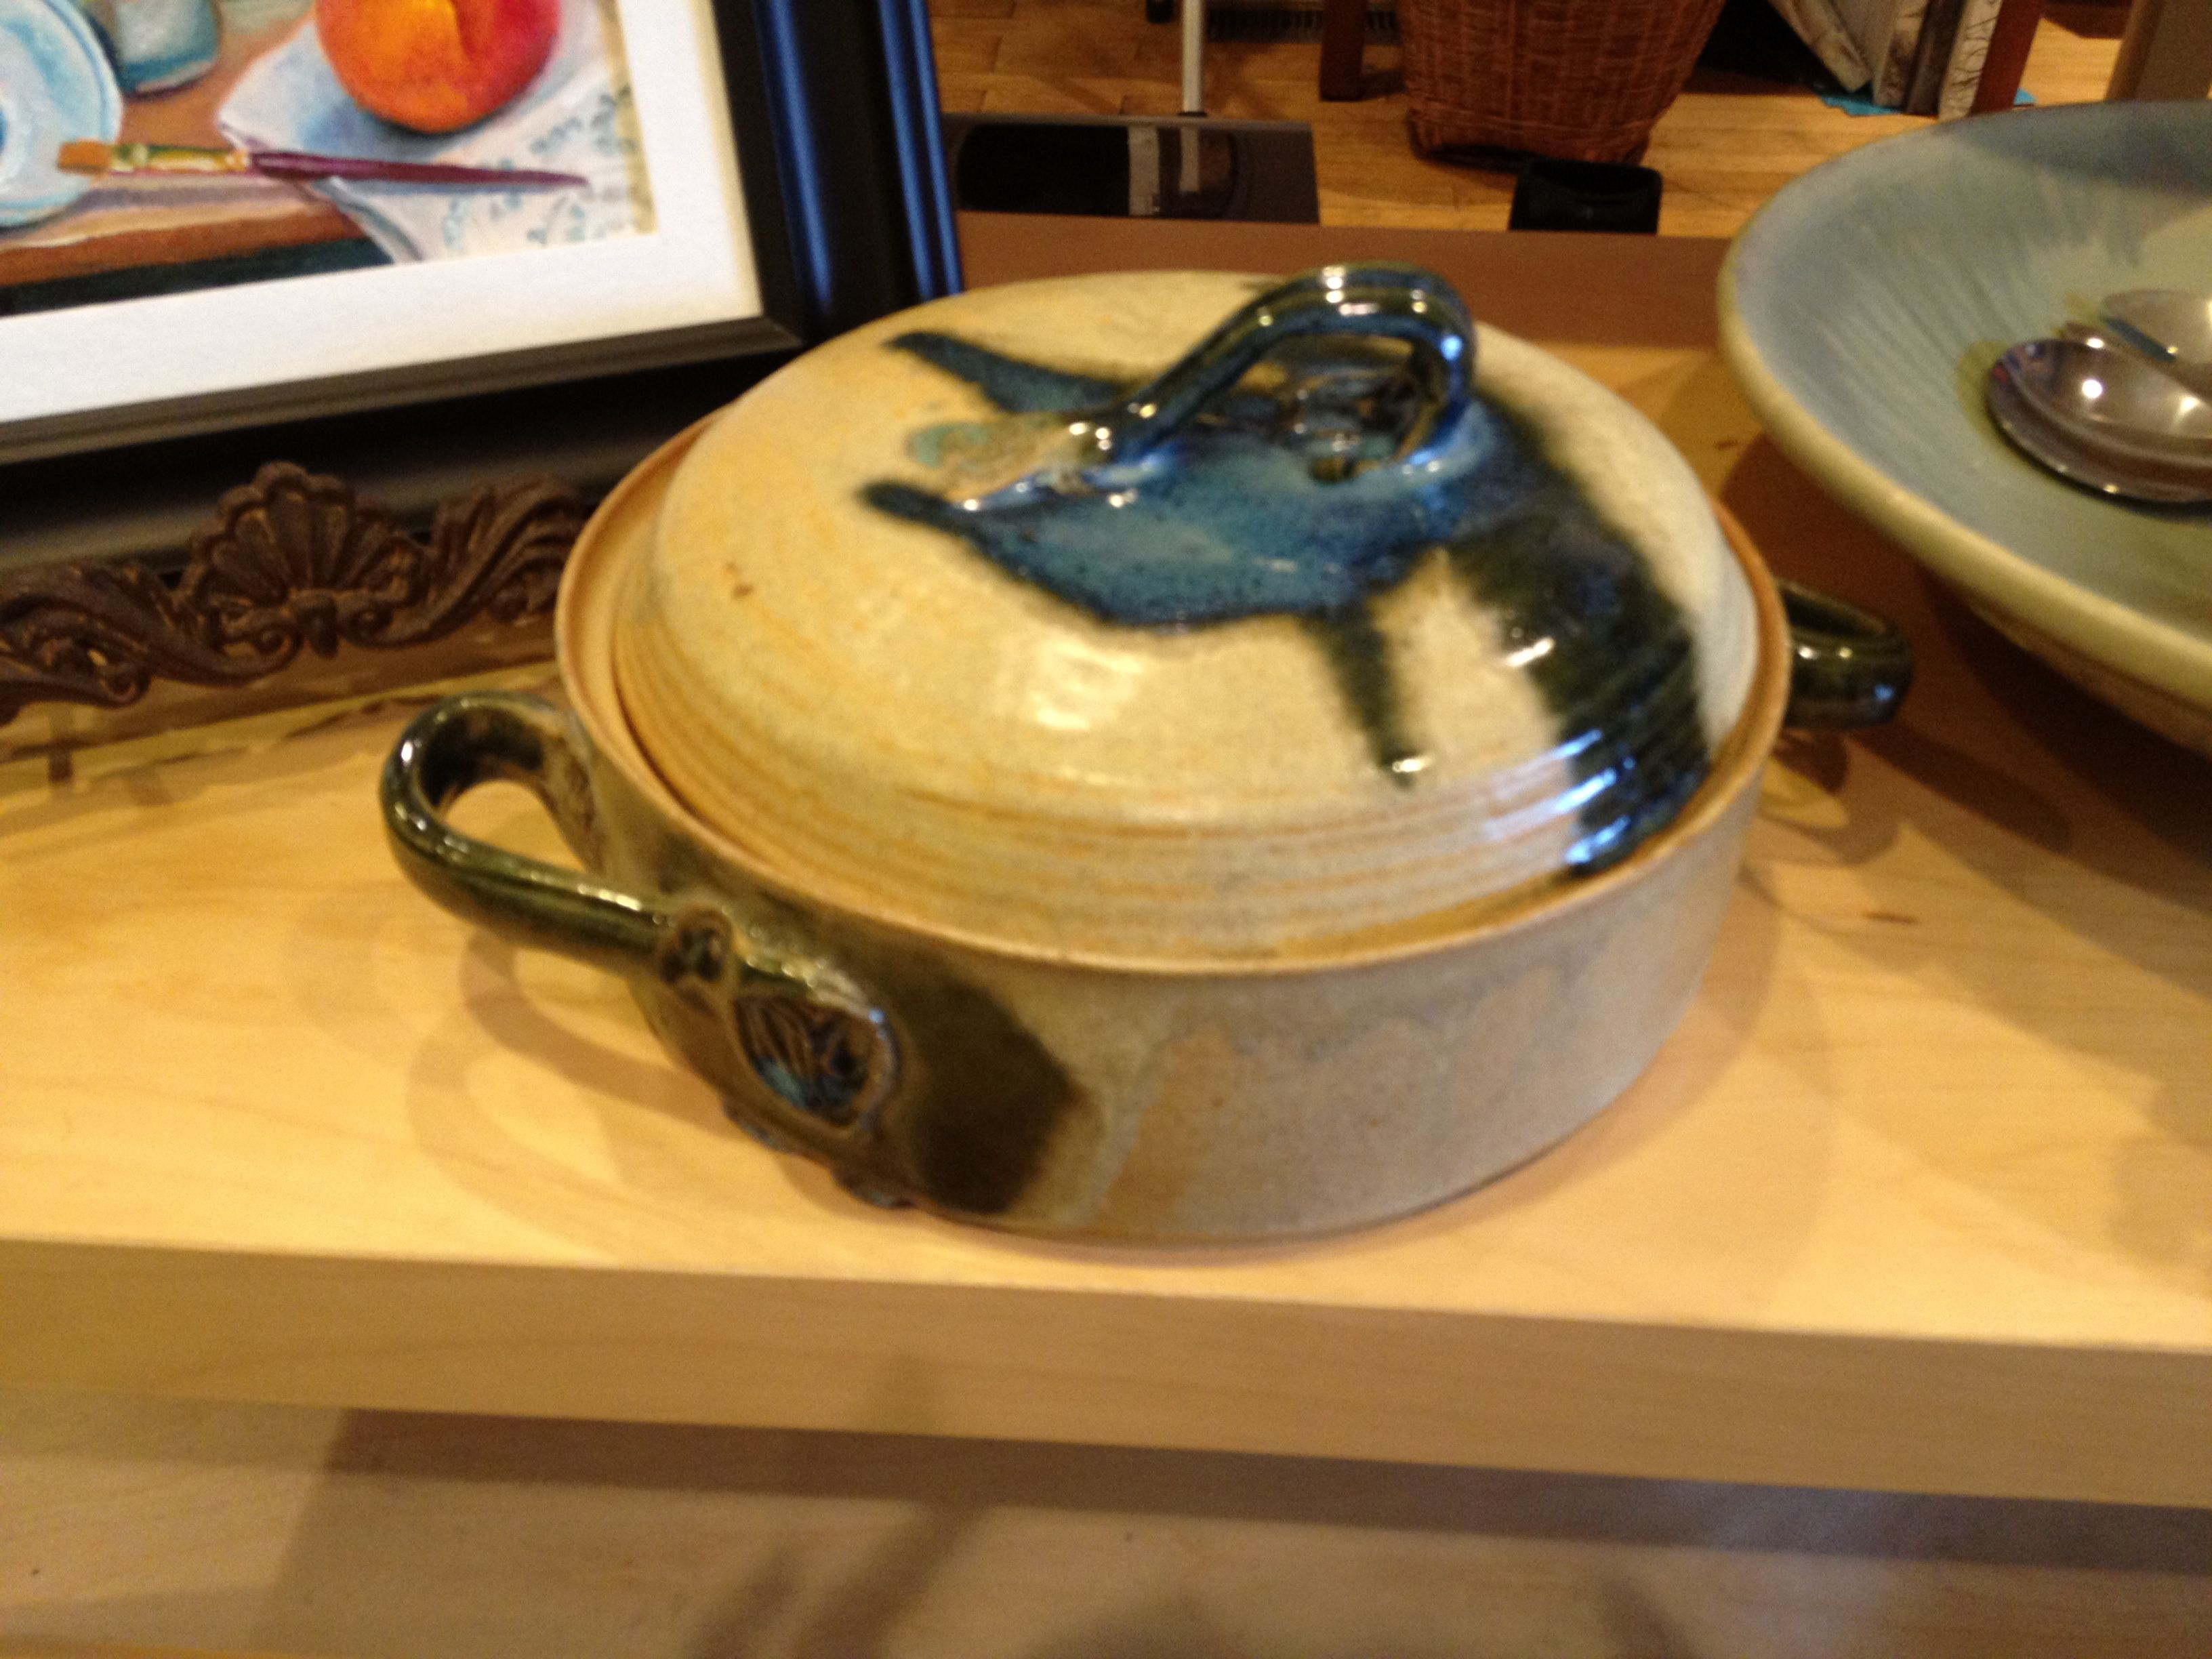 This pottery is so awesome and it's completely microwave, dishwasher and oven safe! The colors are so vibrant and would look great in any decor! Bob Snyder's style is form follows function...and this is the most functional pottery in the gallery.